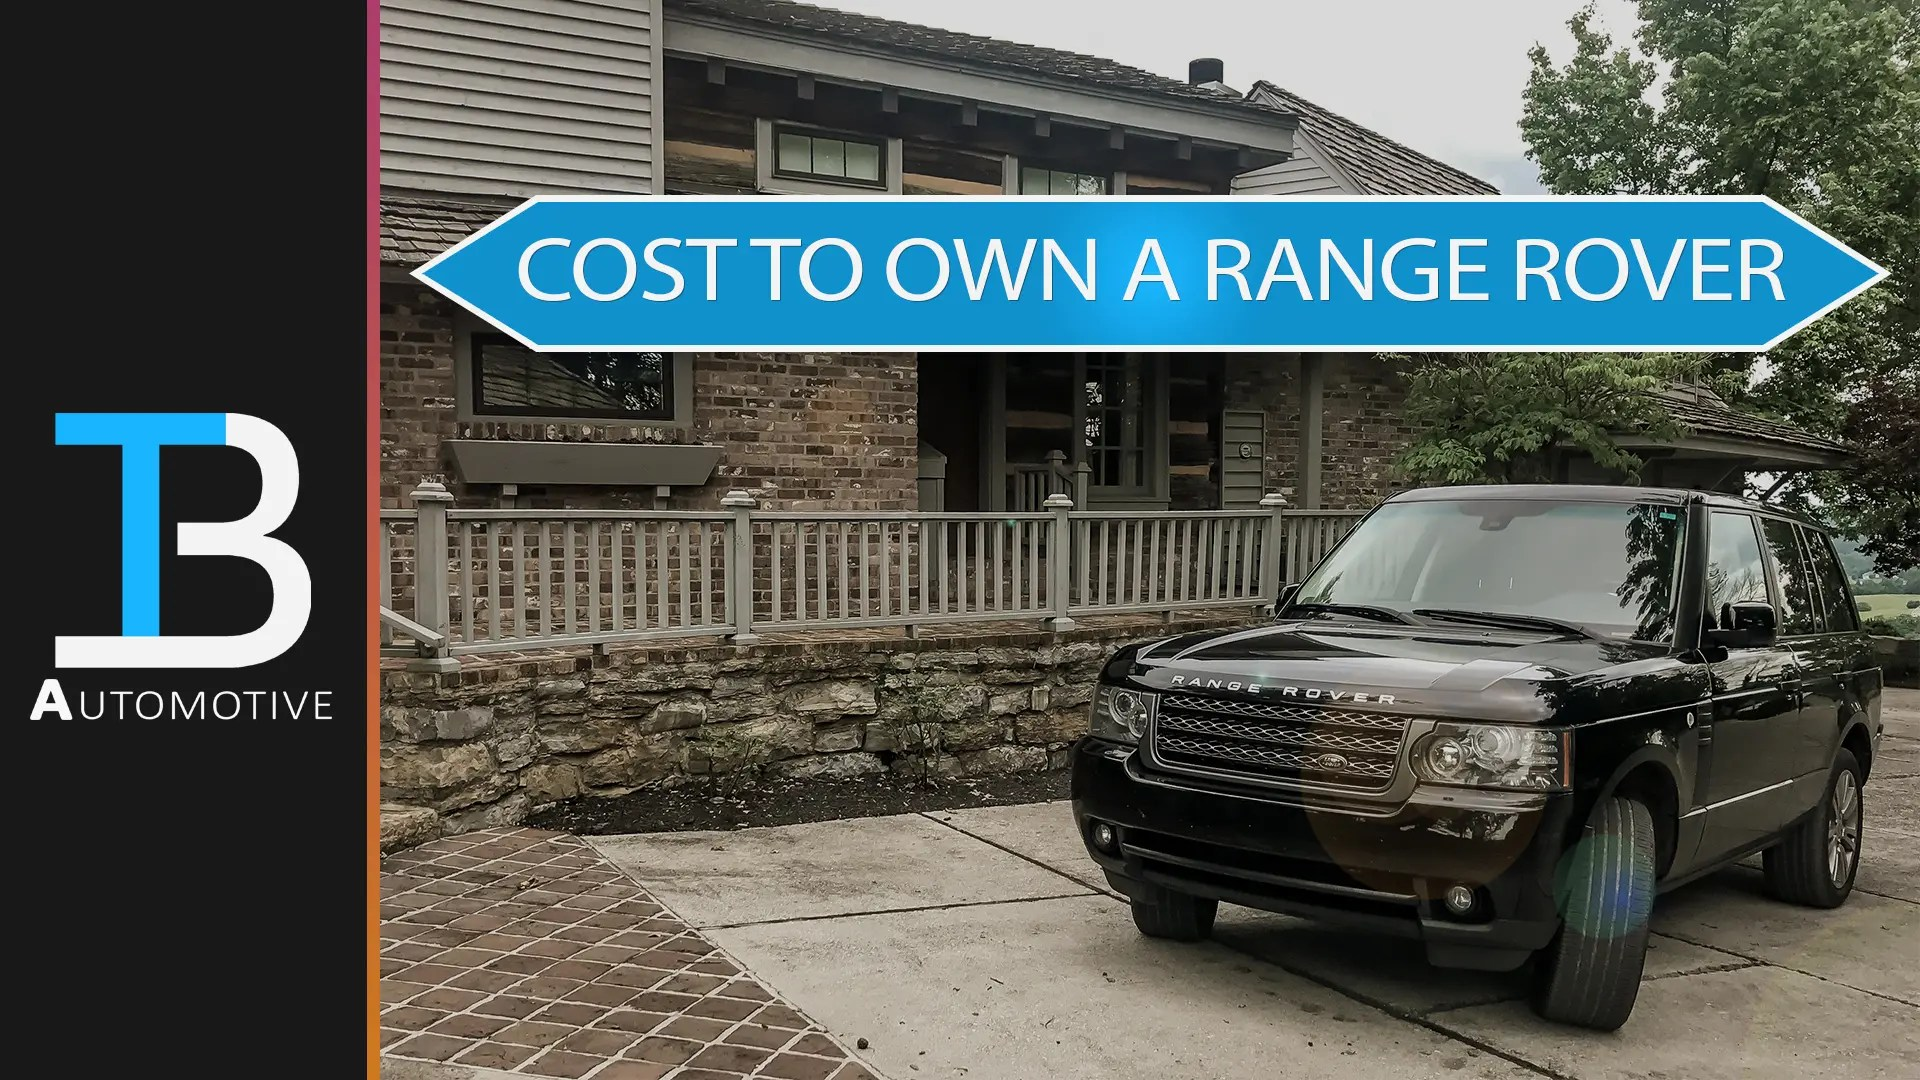 Cost To Own A Range Rover e of Year Ownership with the 2011 L322